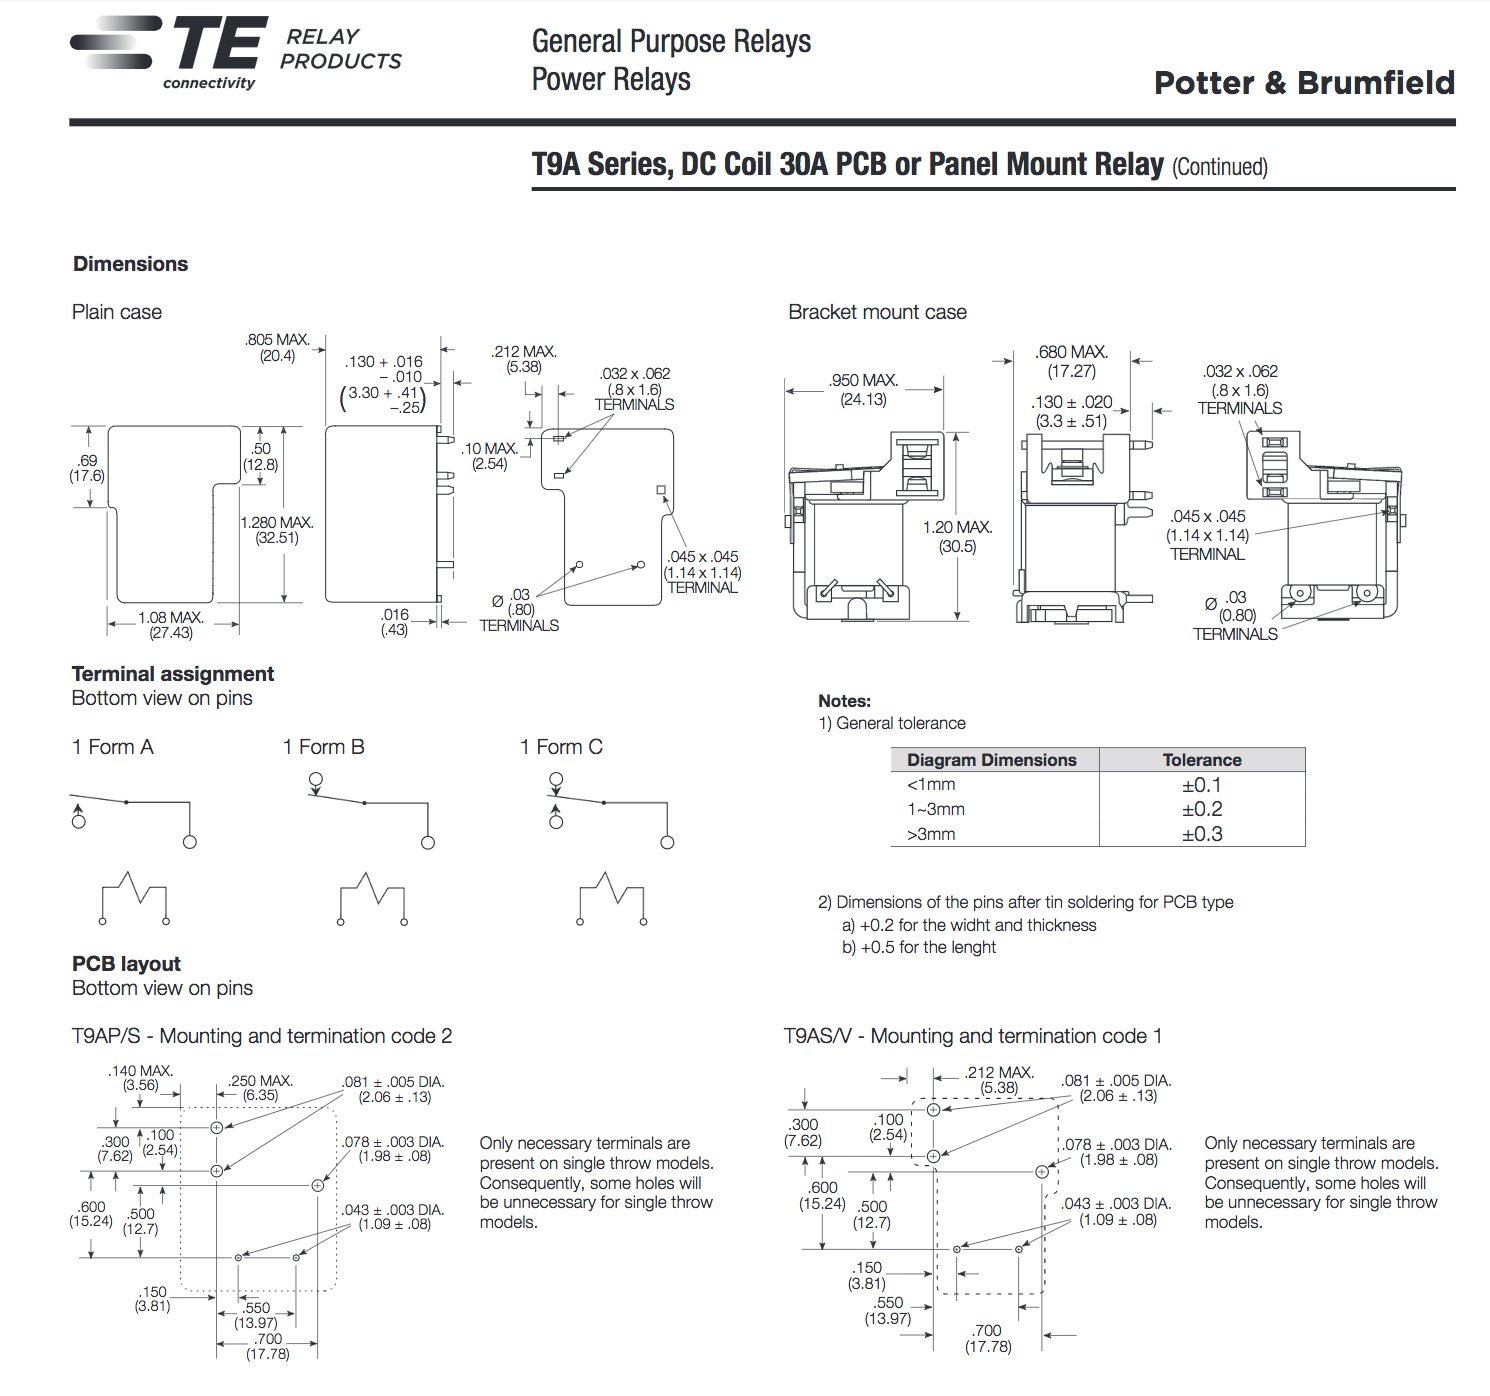 atwood-8535-iv-dclp-wiring-diagram-7 Atwood Furnace Wiring Diagram For Rv on